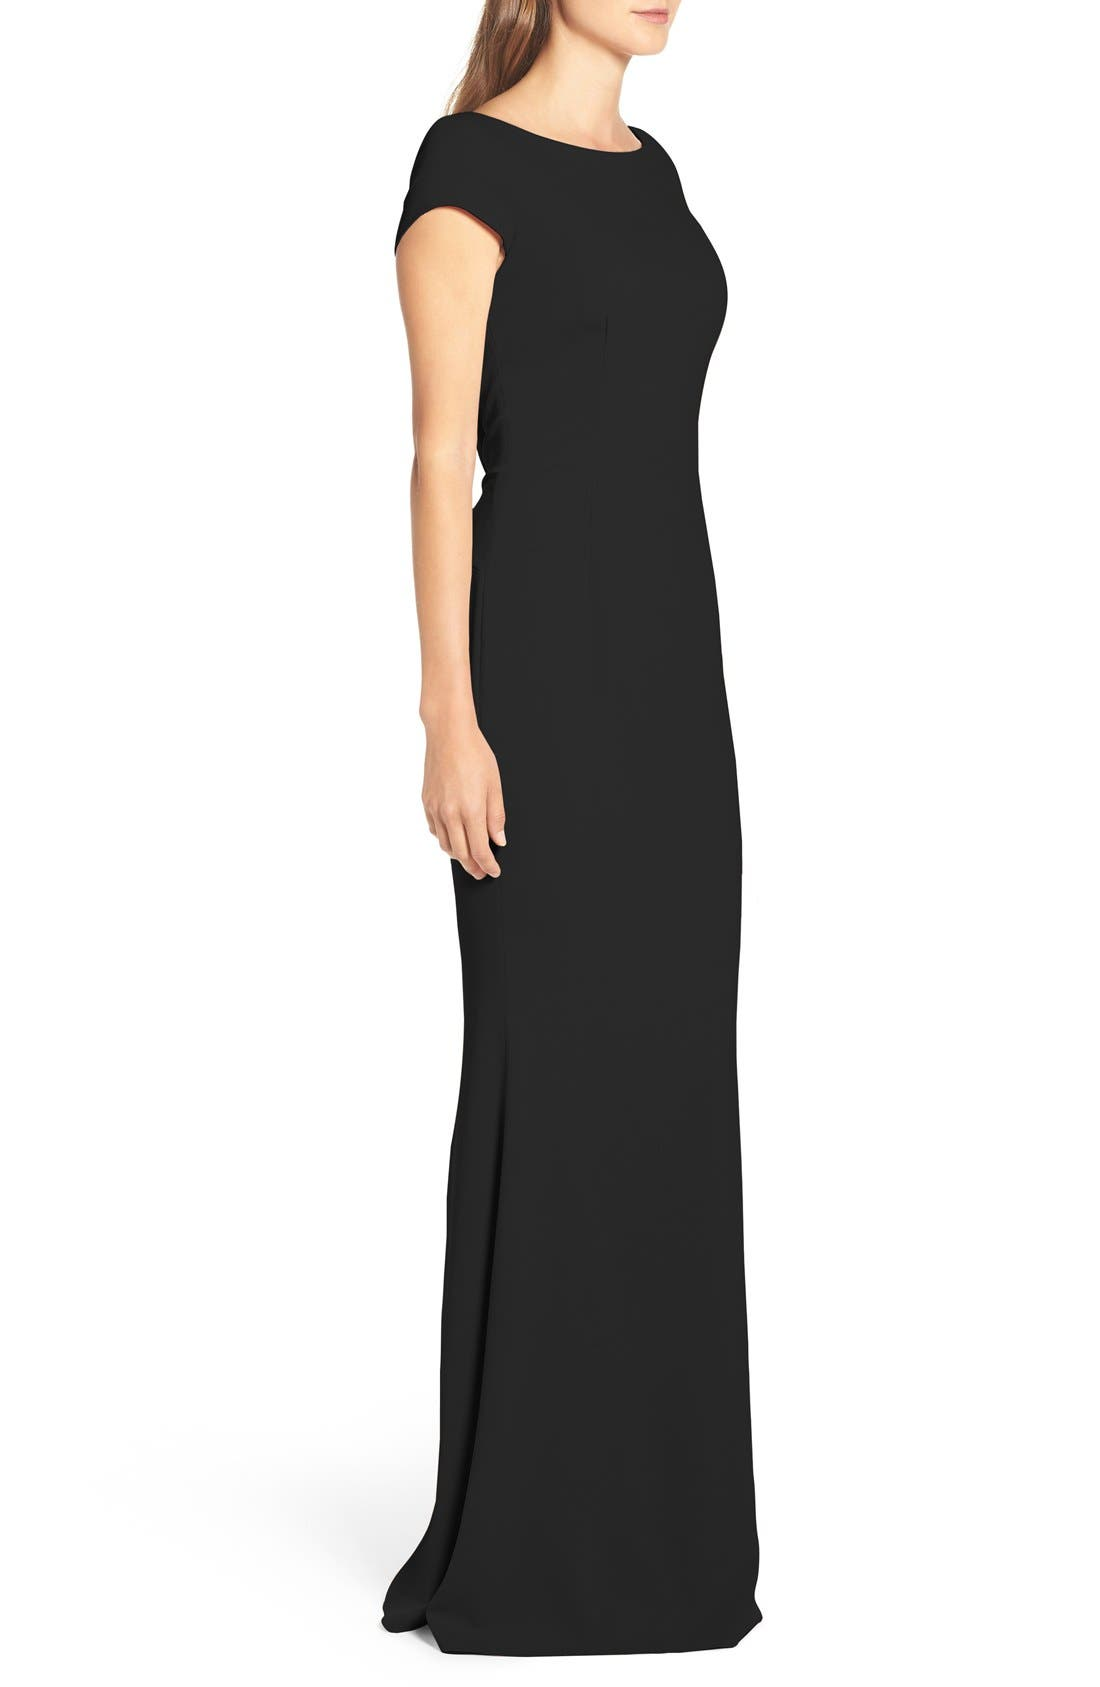 KATIE MAY, Intrigue Plunge Knot Back Gown, Alternate thumbnail 8, color, 001